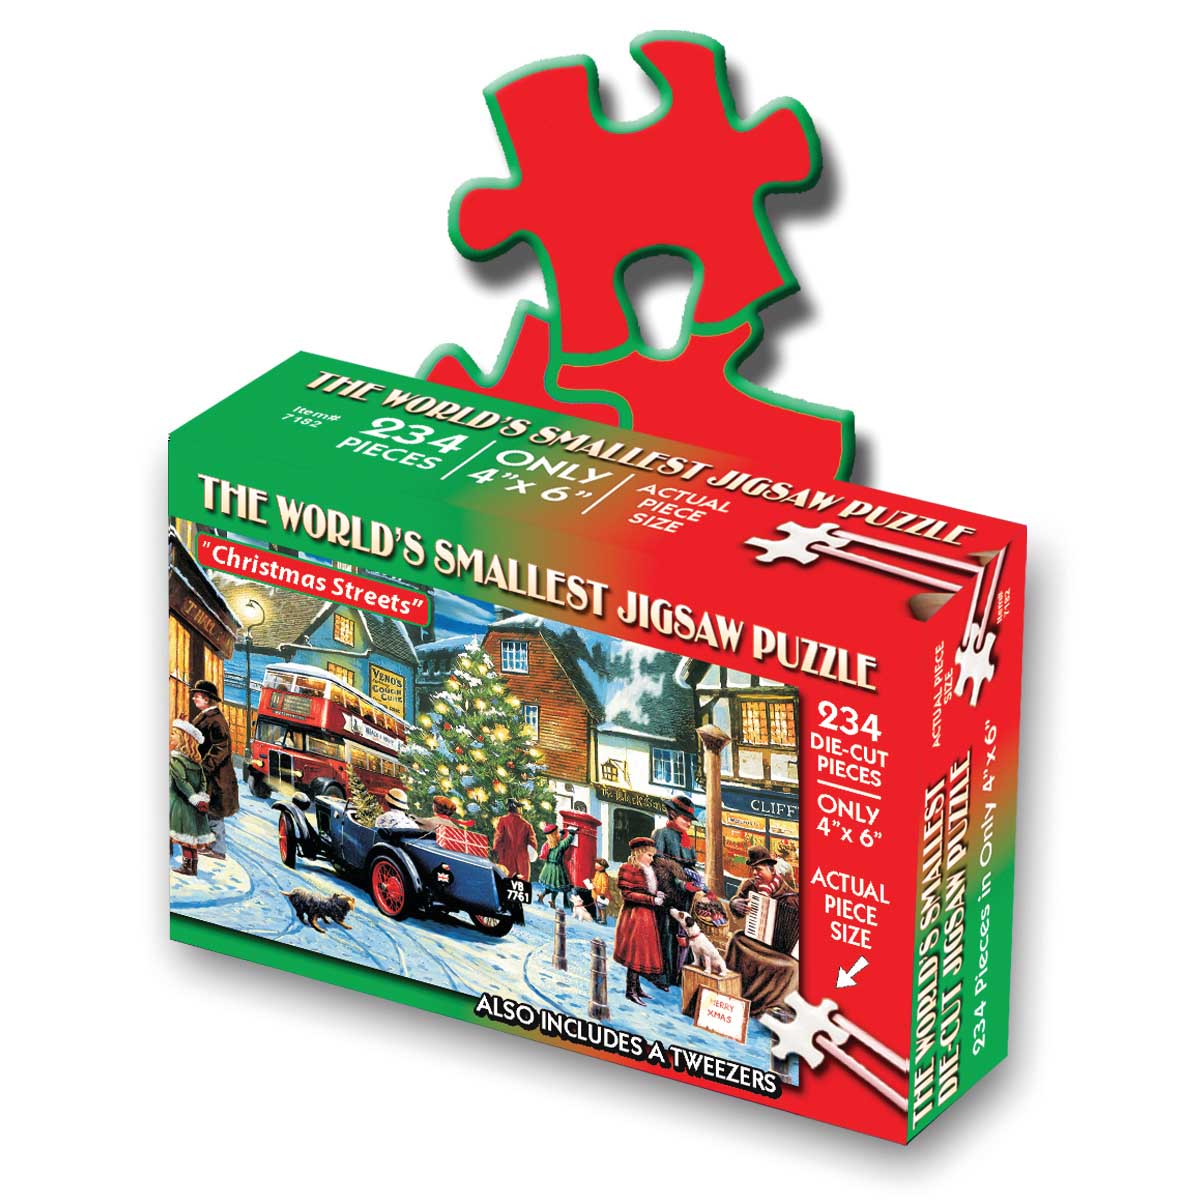 World's Smallest Jigsaw Puzzle - Christmas Streets Christmas Jigsaw Puzzle